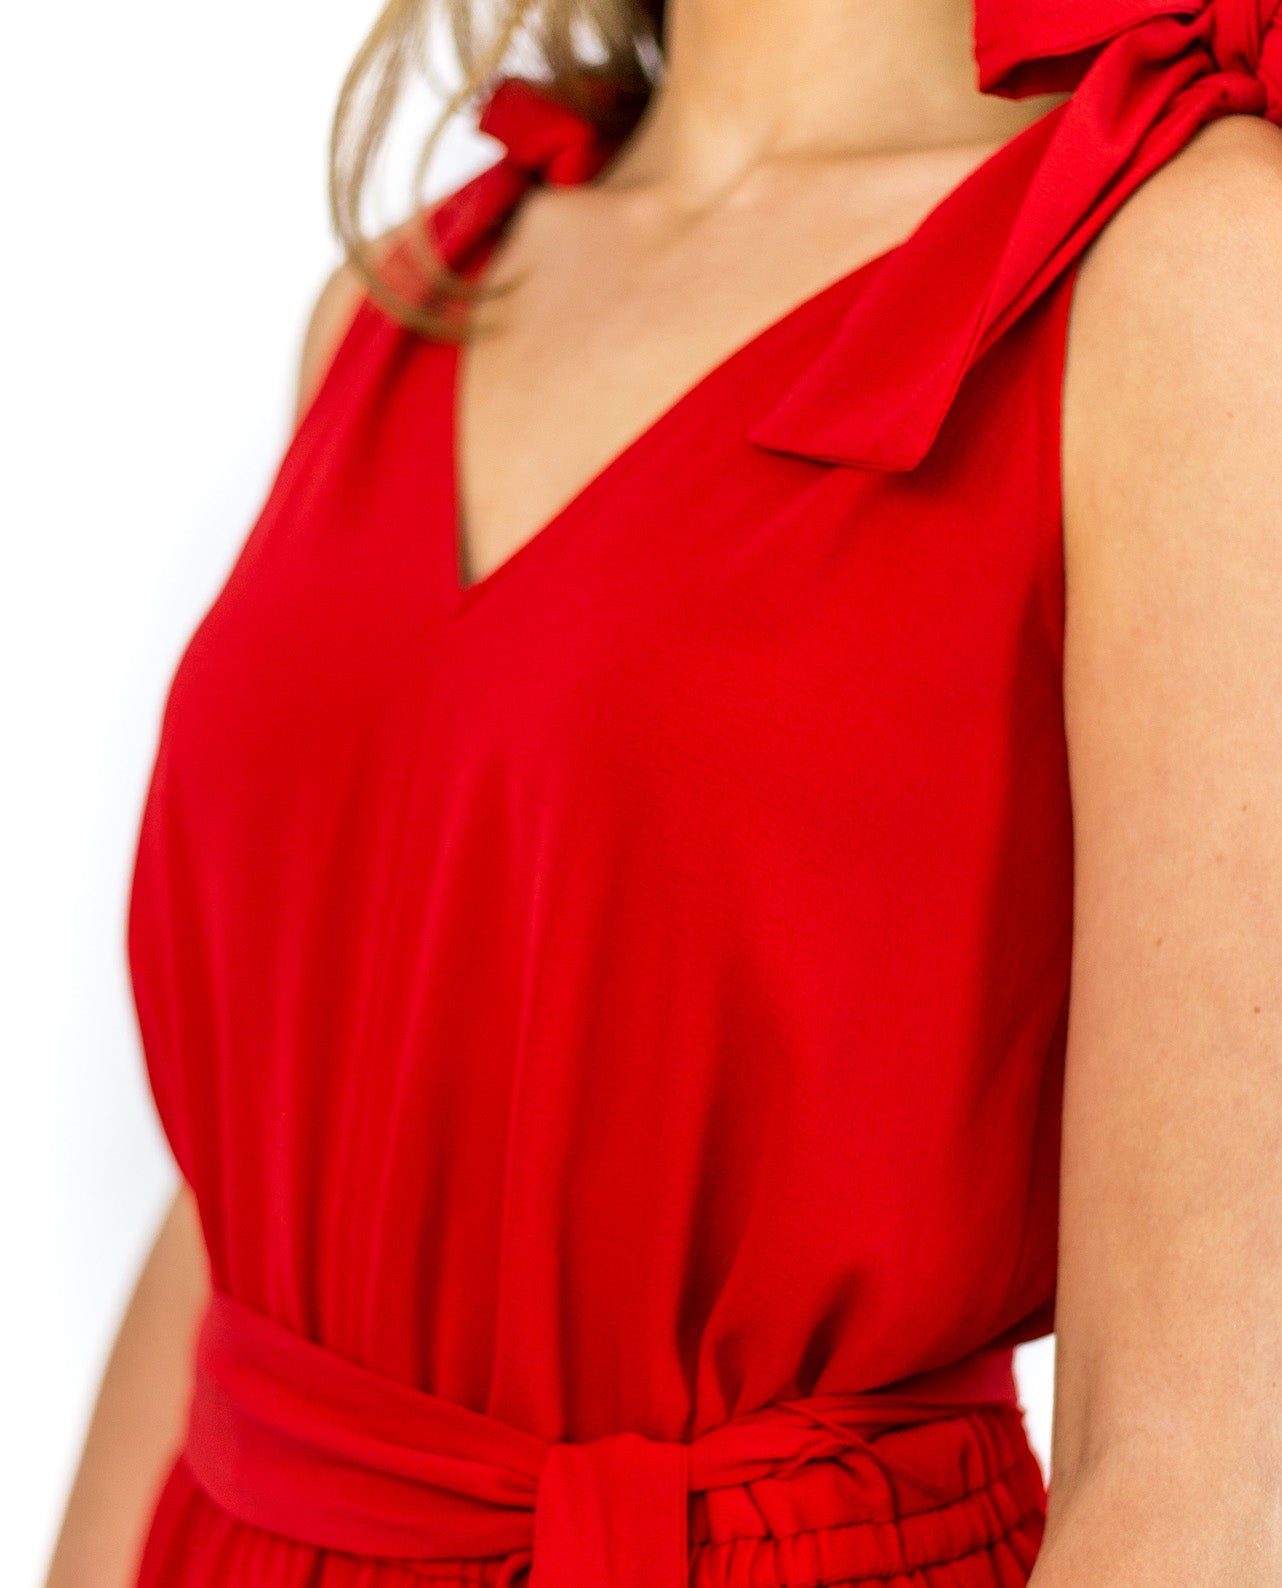 MICHAEL KORS RED JUMPSUIT WITH BOW DETAIL